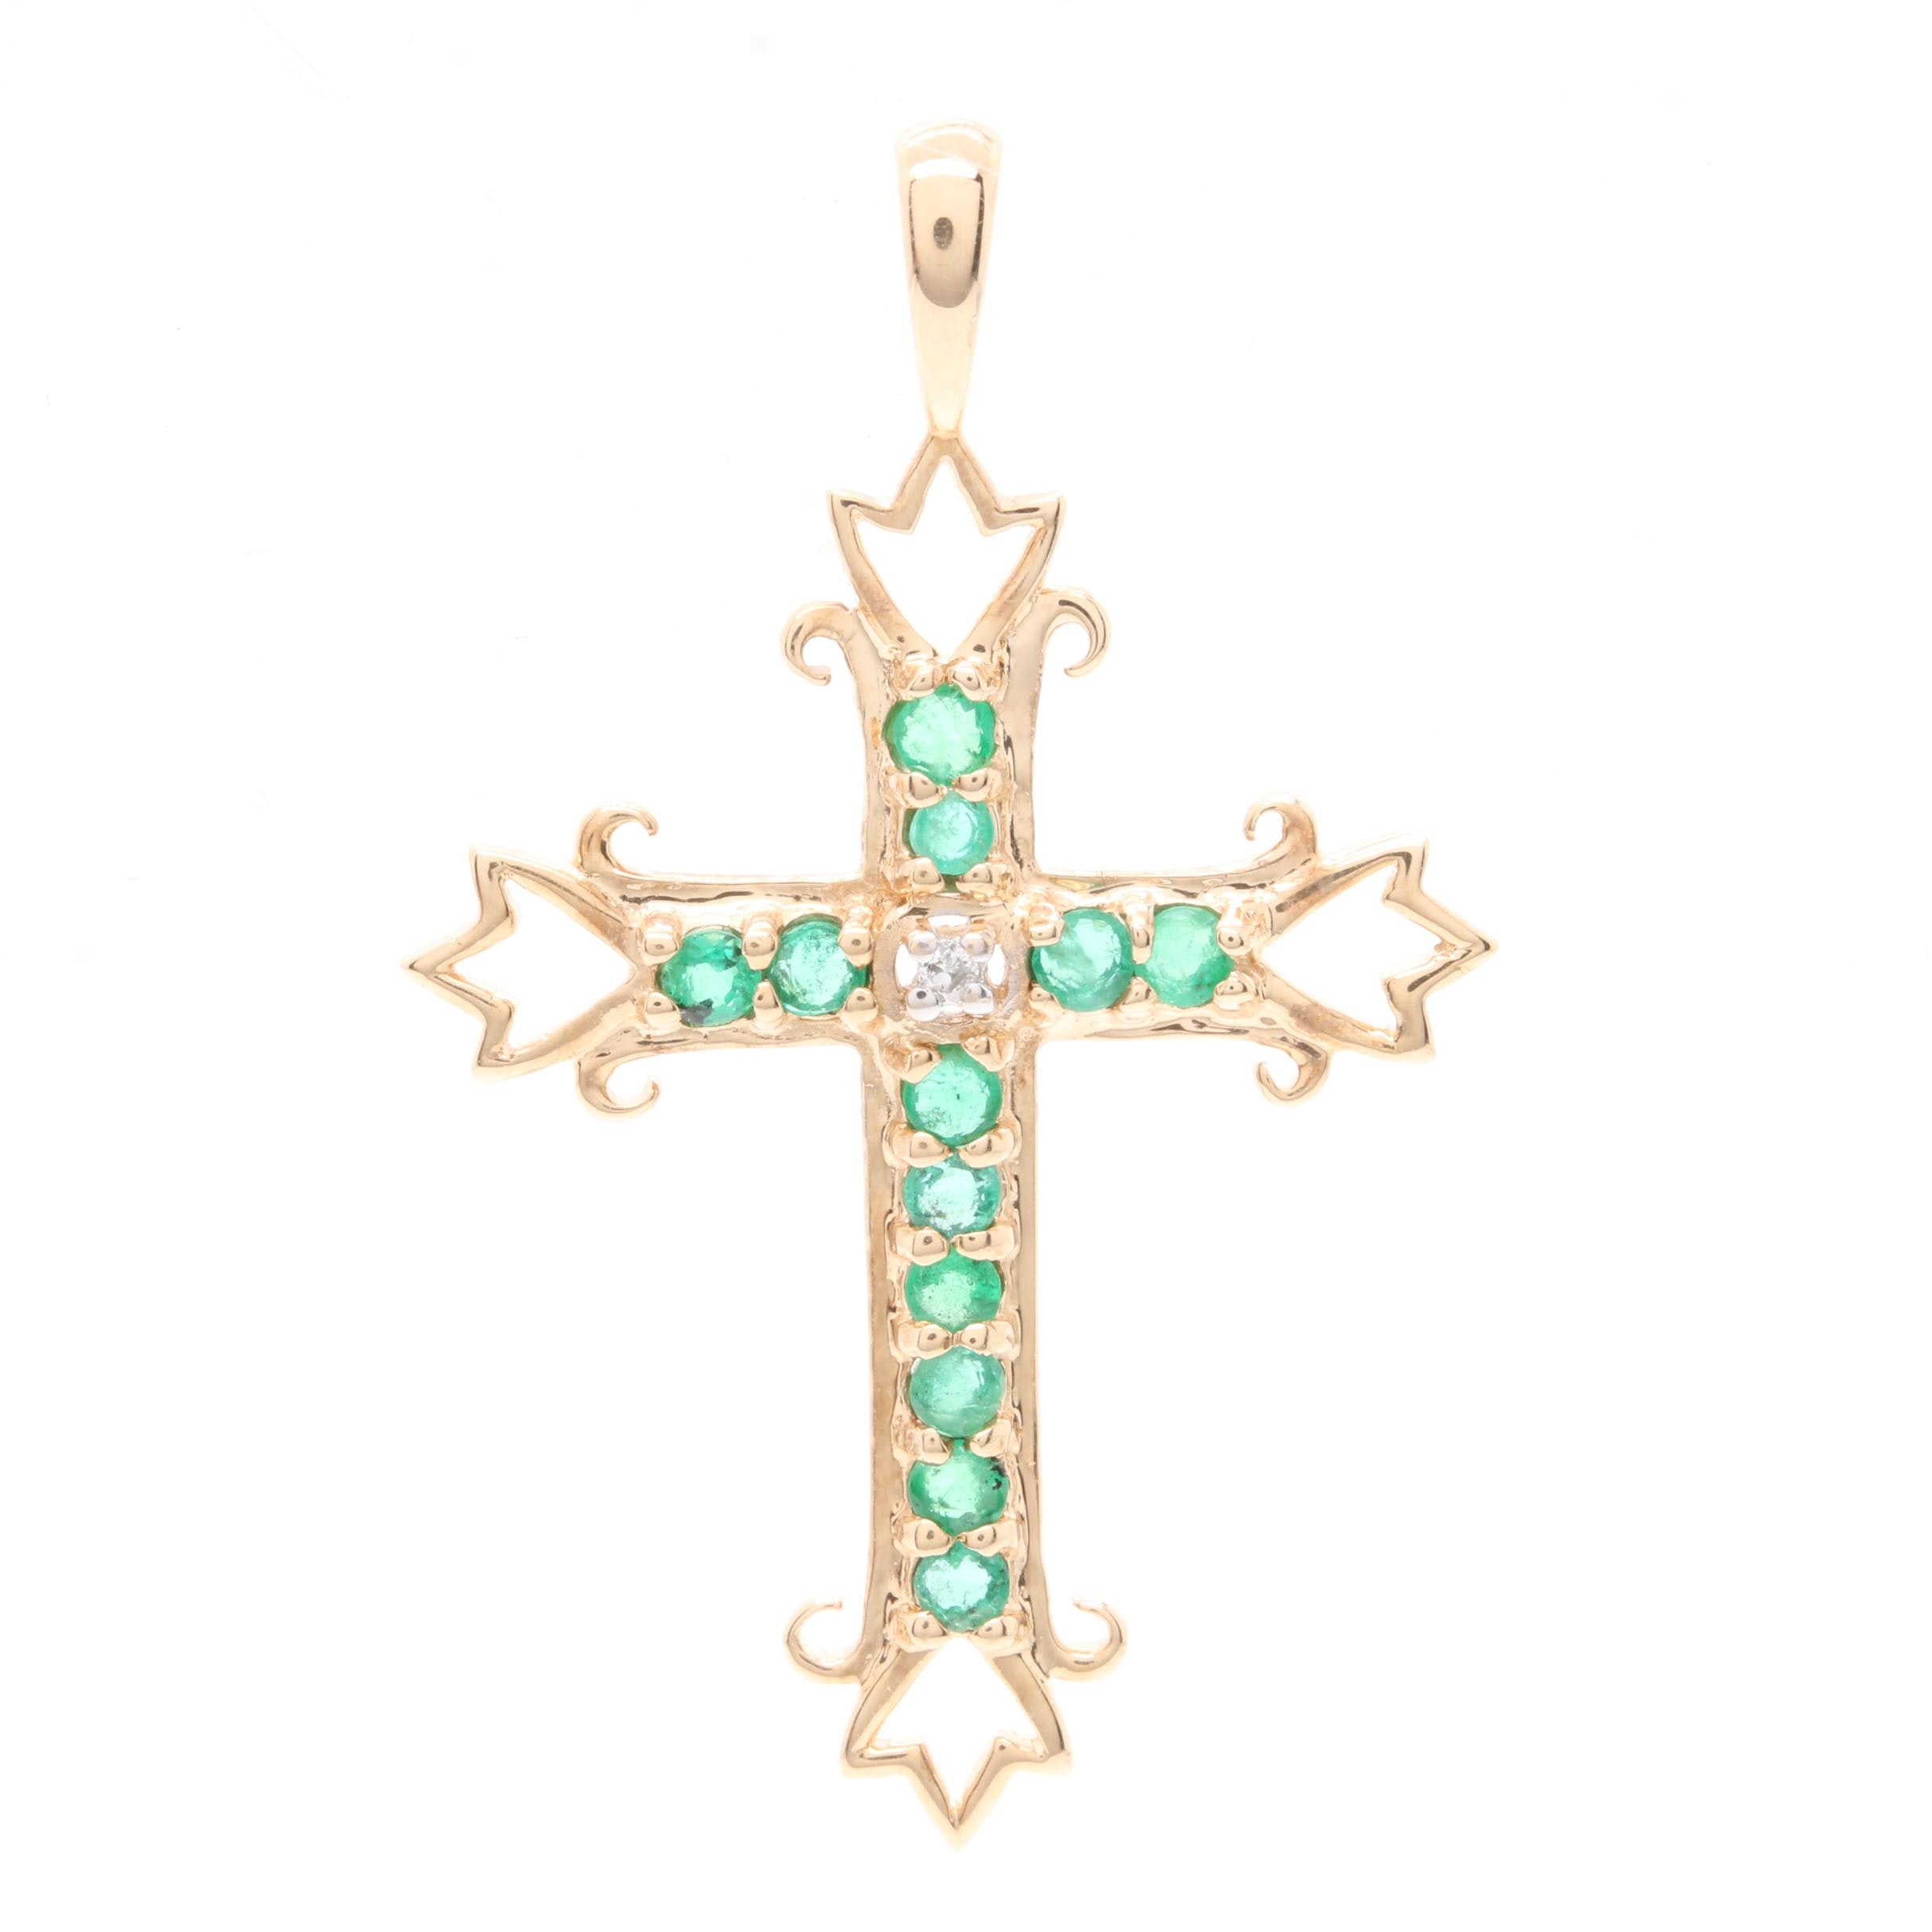 14K Yellow Gold Emerald and Diamond Crux Gemmata Cross Pendant